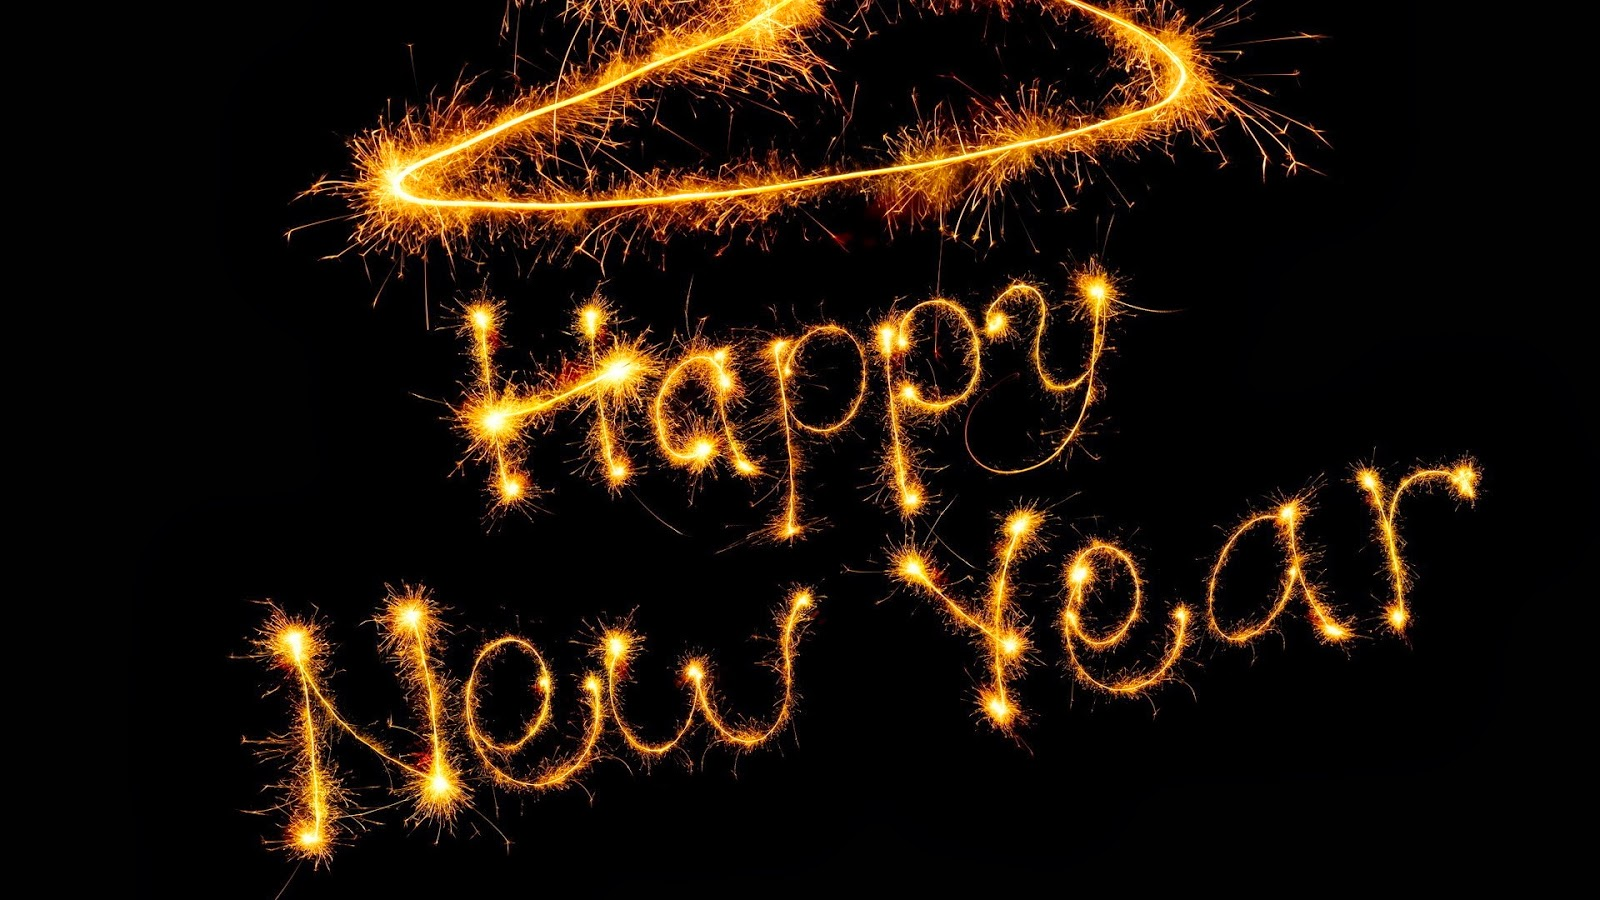 Wallpaper Backgrounds: Happy New Year Backgrounds